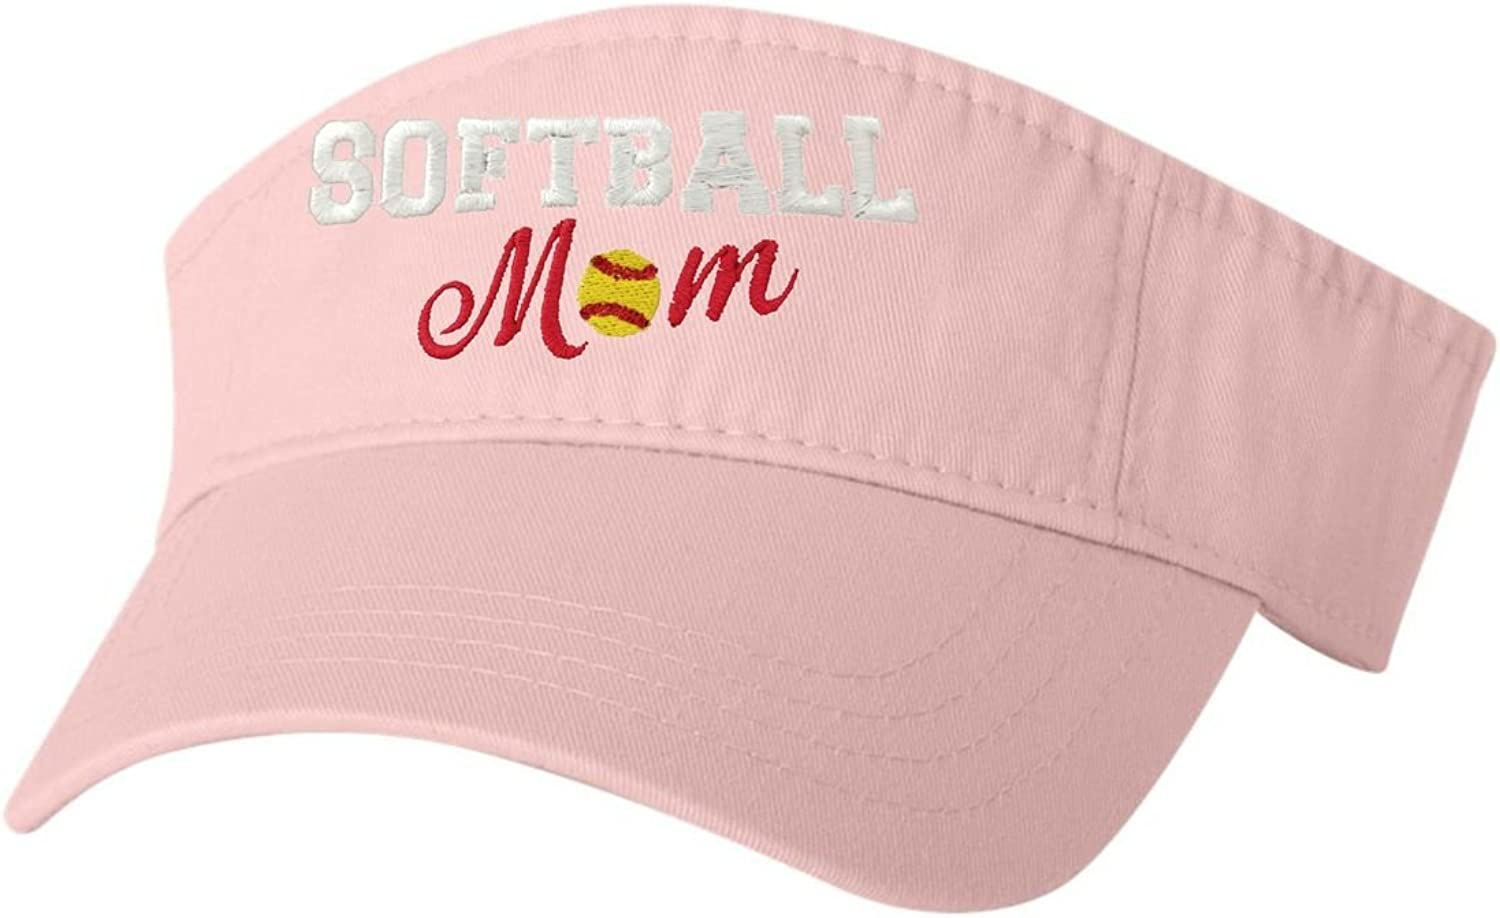 Go All Out Adult Softball Mom Embroidered Visor Dad Hat